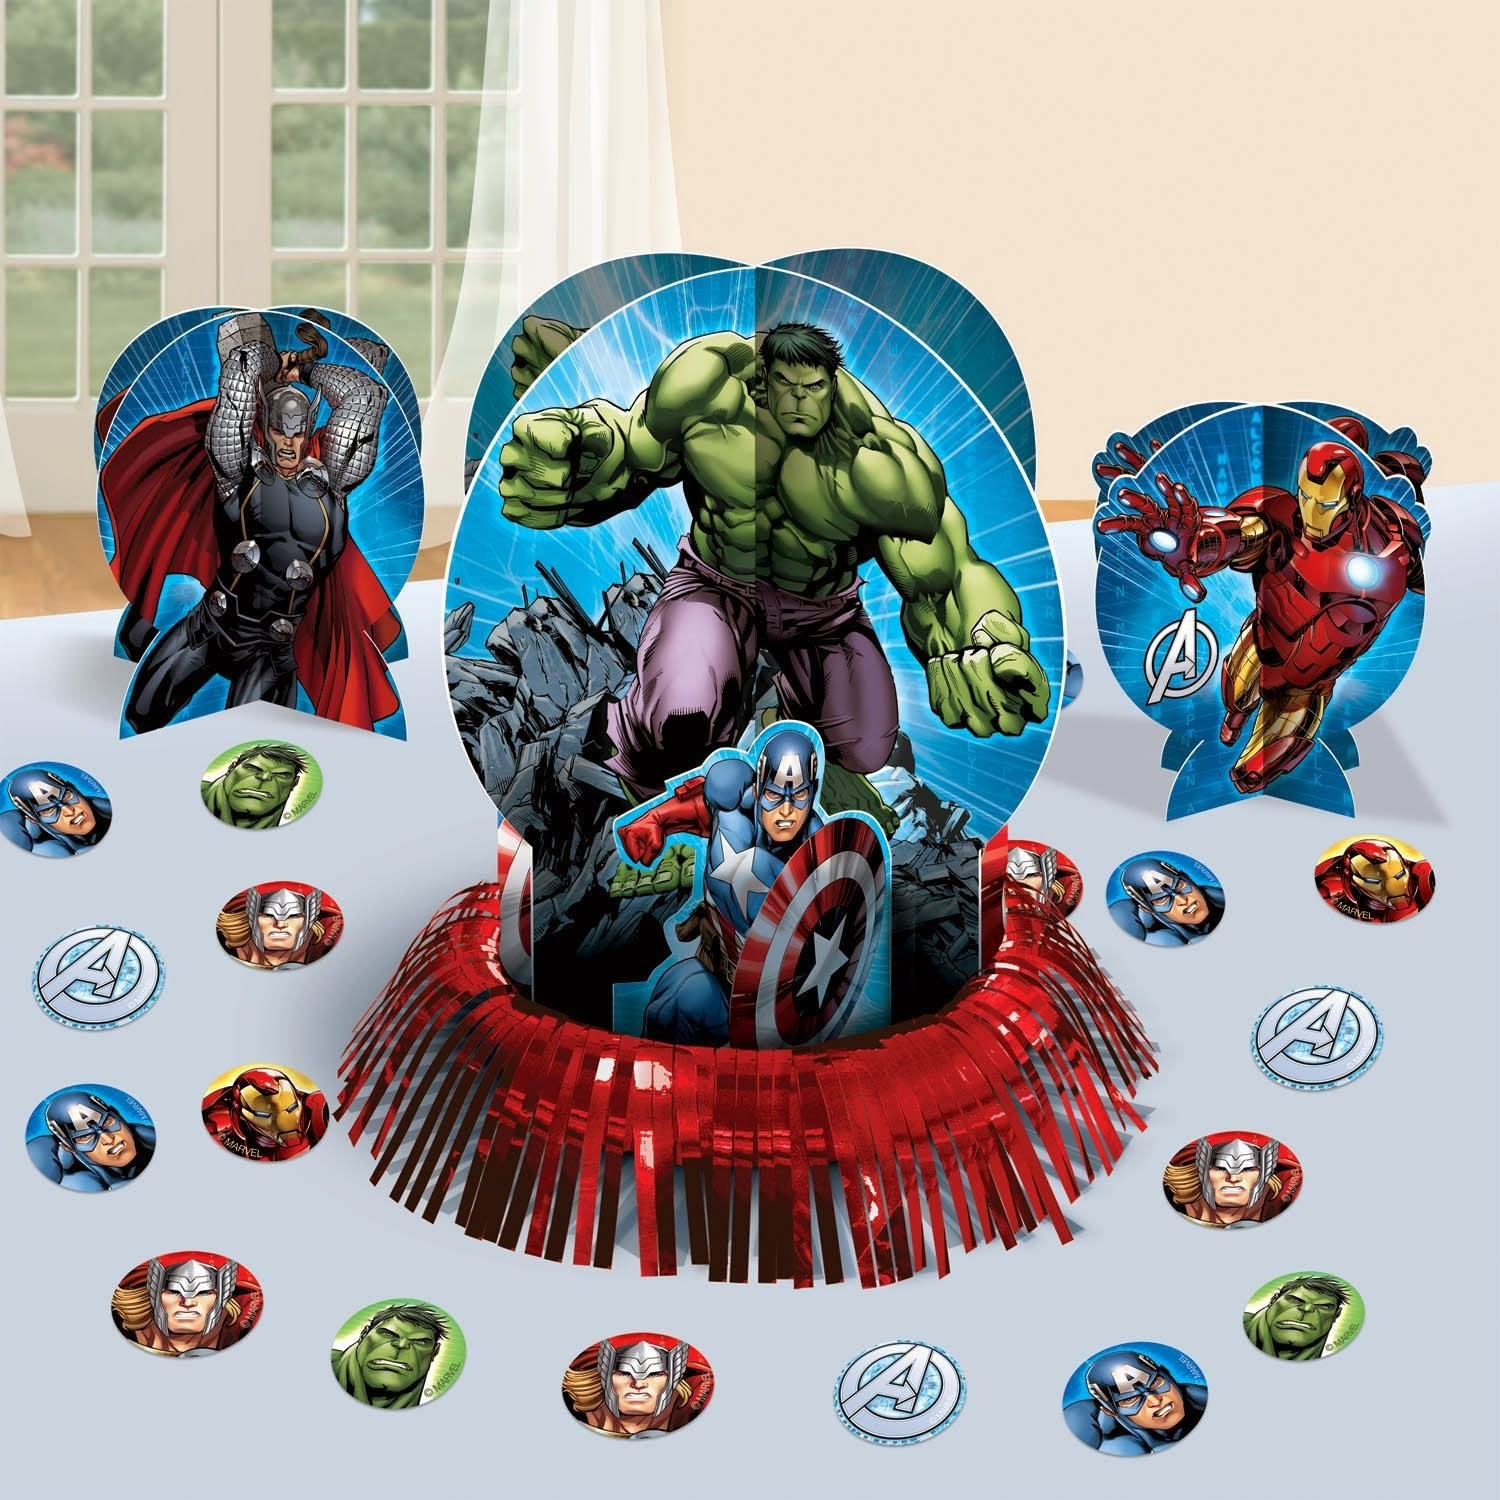 Marvels Avengers Themed Party Supplies and Ideas  Fun Themed Party ...